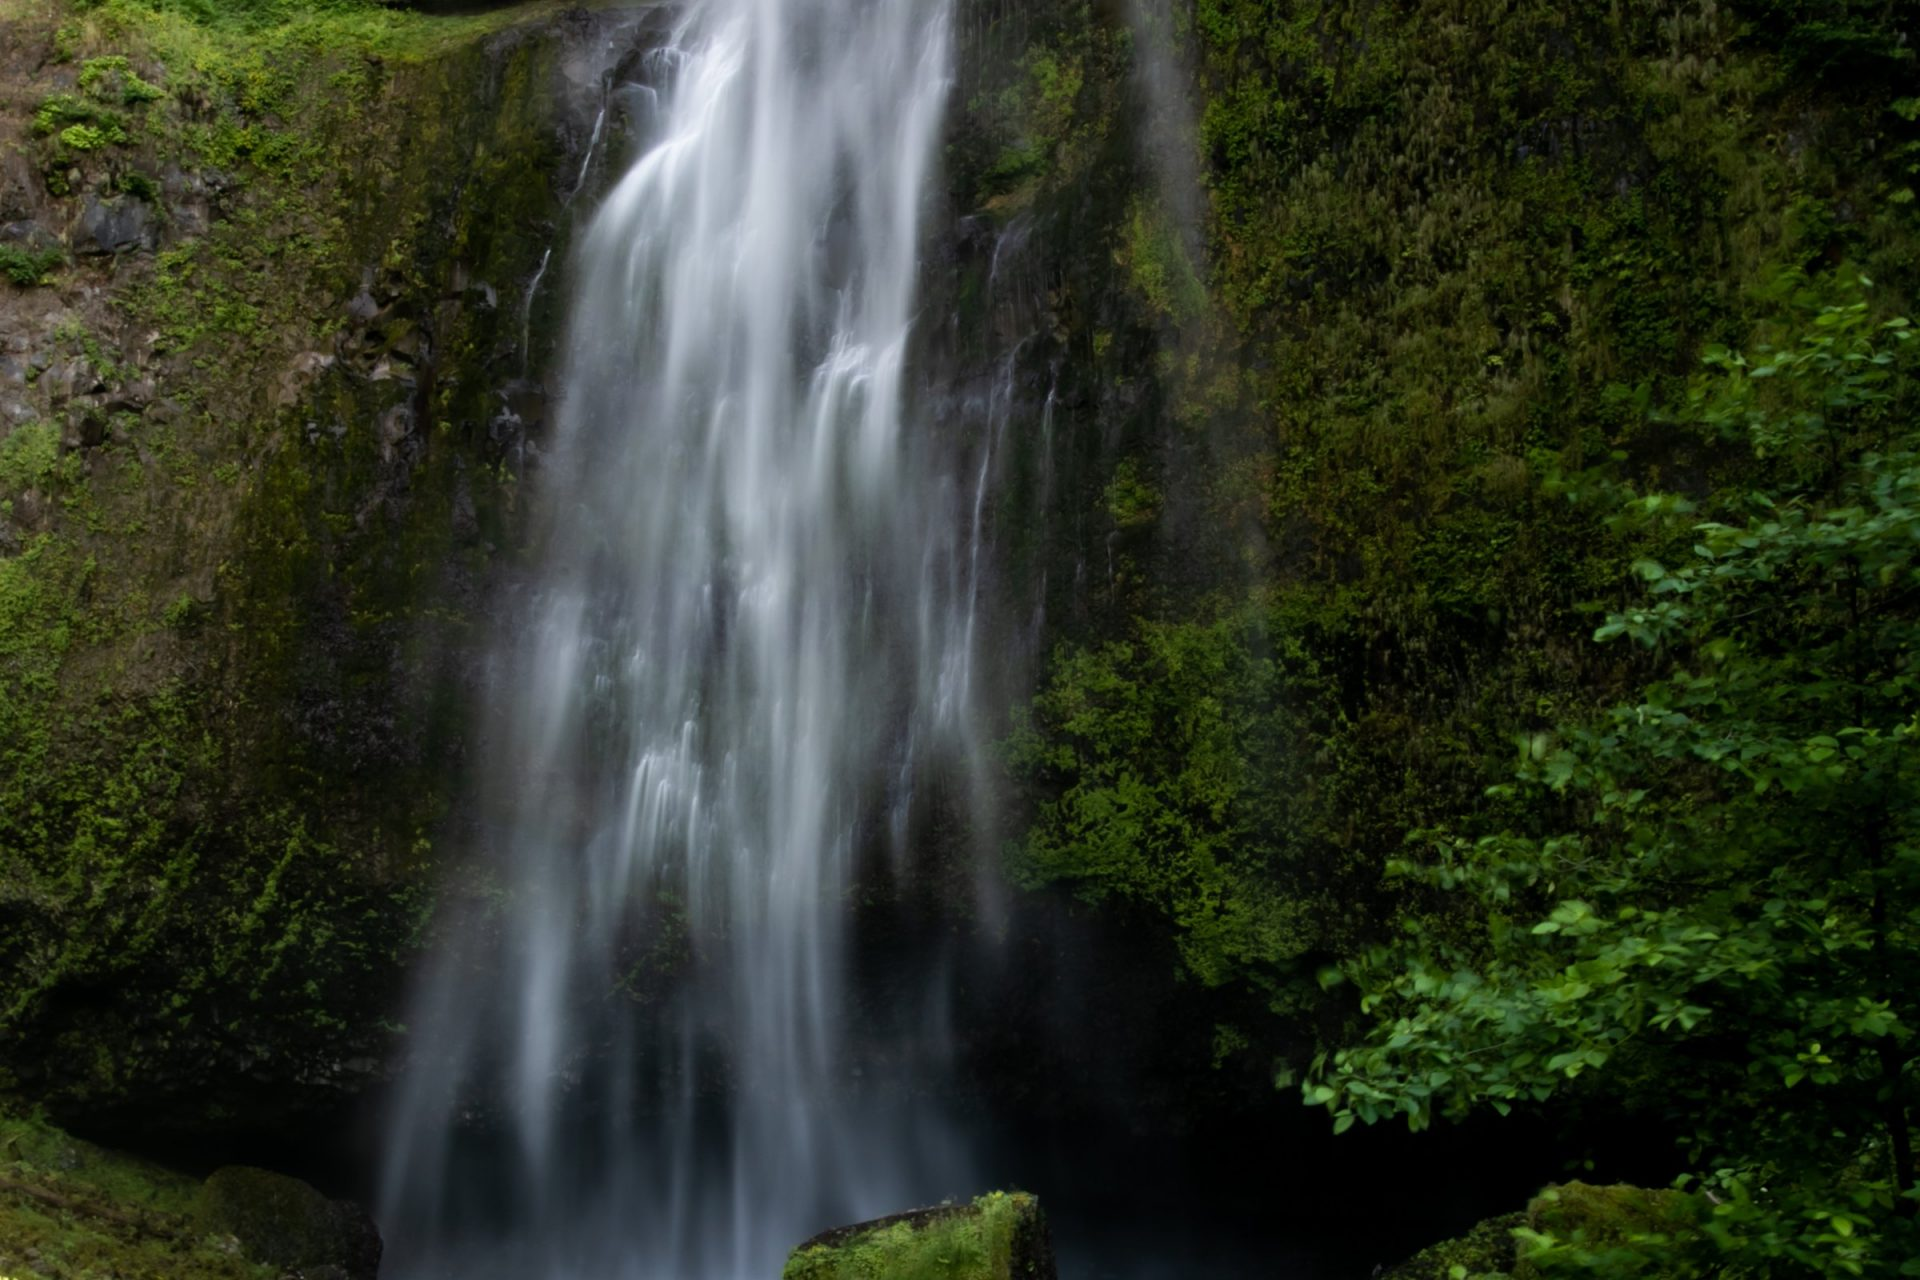 Small Misty Waterfall On Mossy Cliff